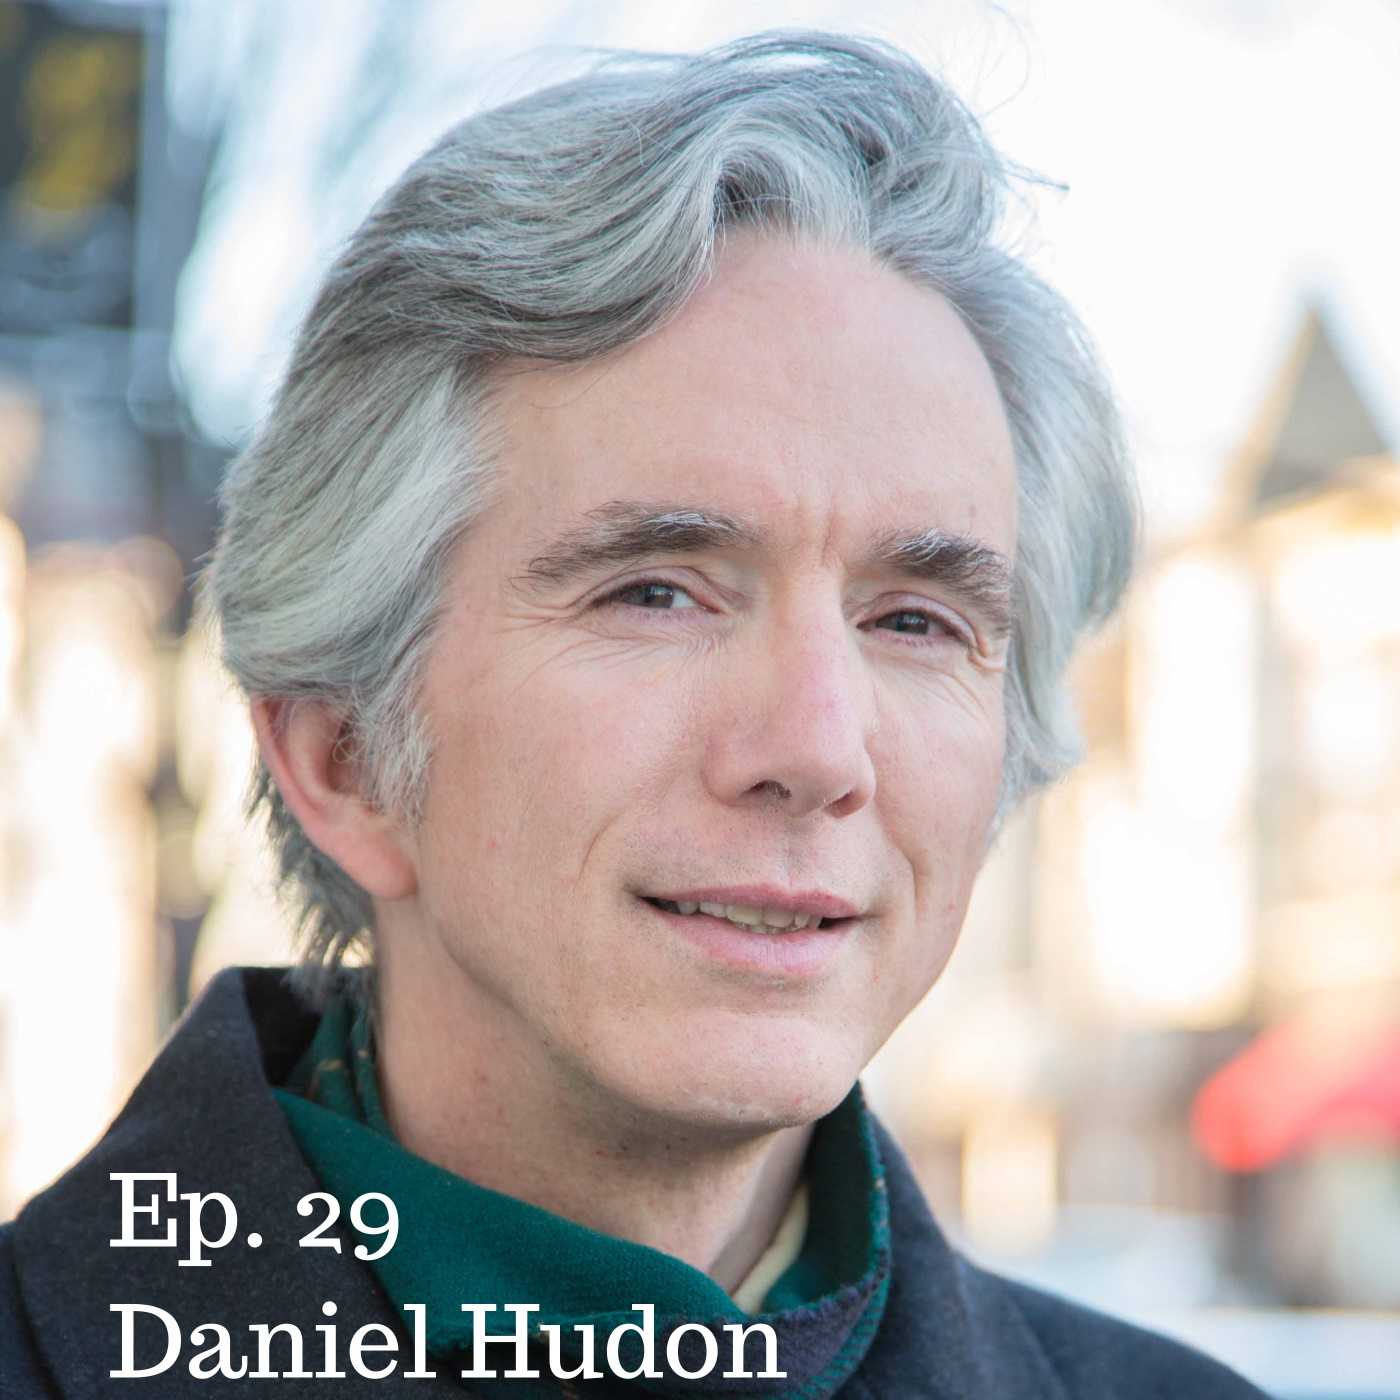 Ep. 29 Daniel Hudon: Eco Fiction and Poetry for Species Lost